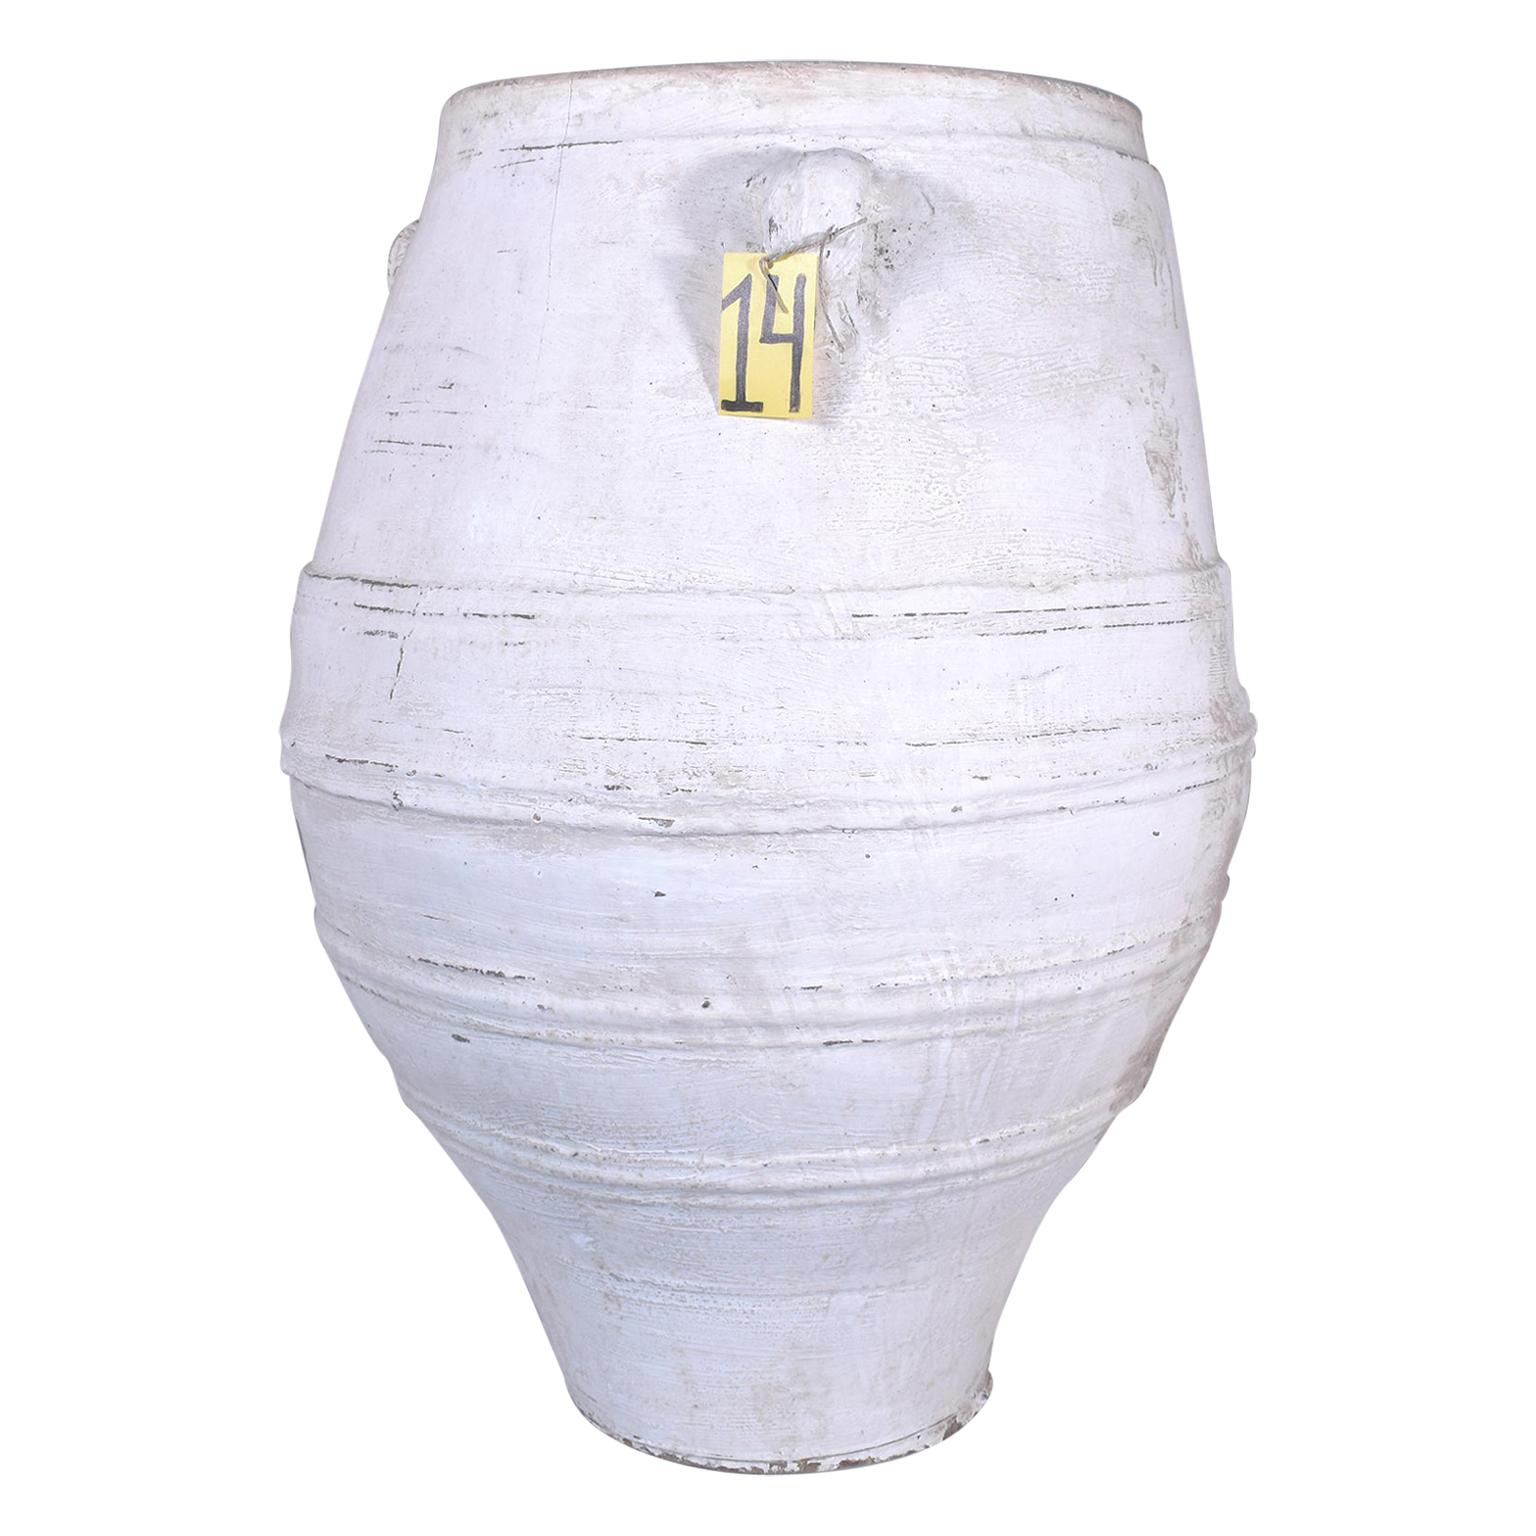 European Terracotta Jardiniere or Planter